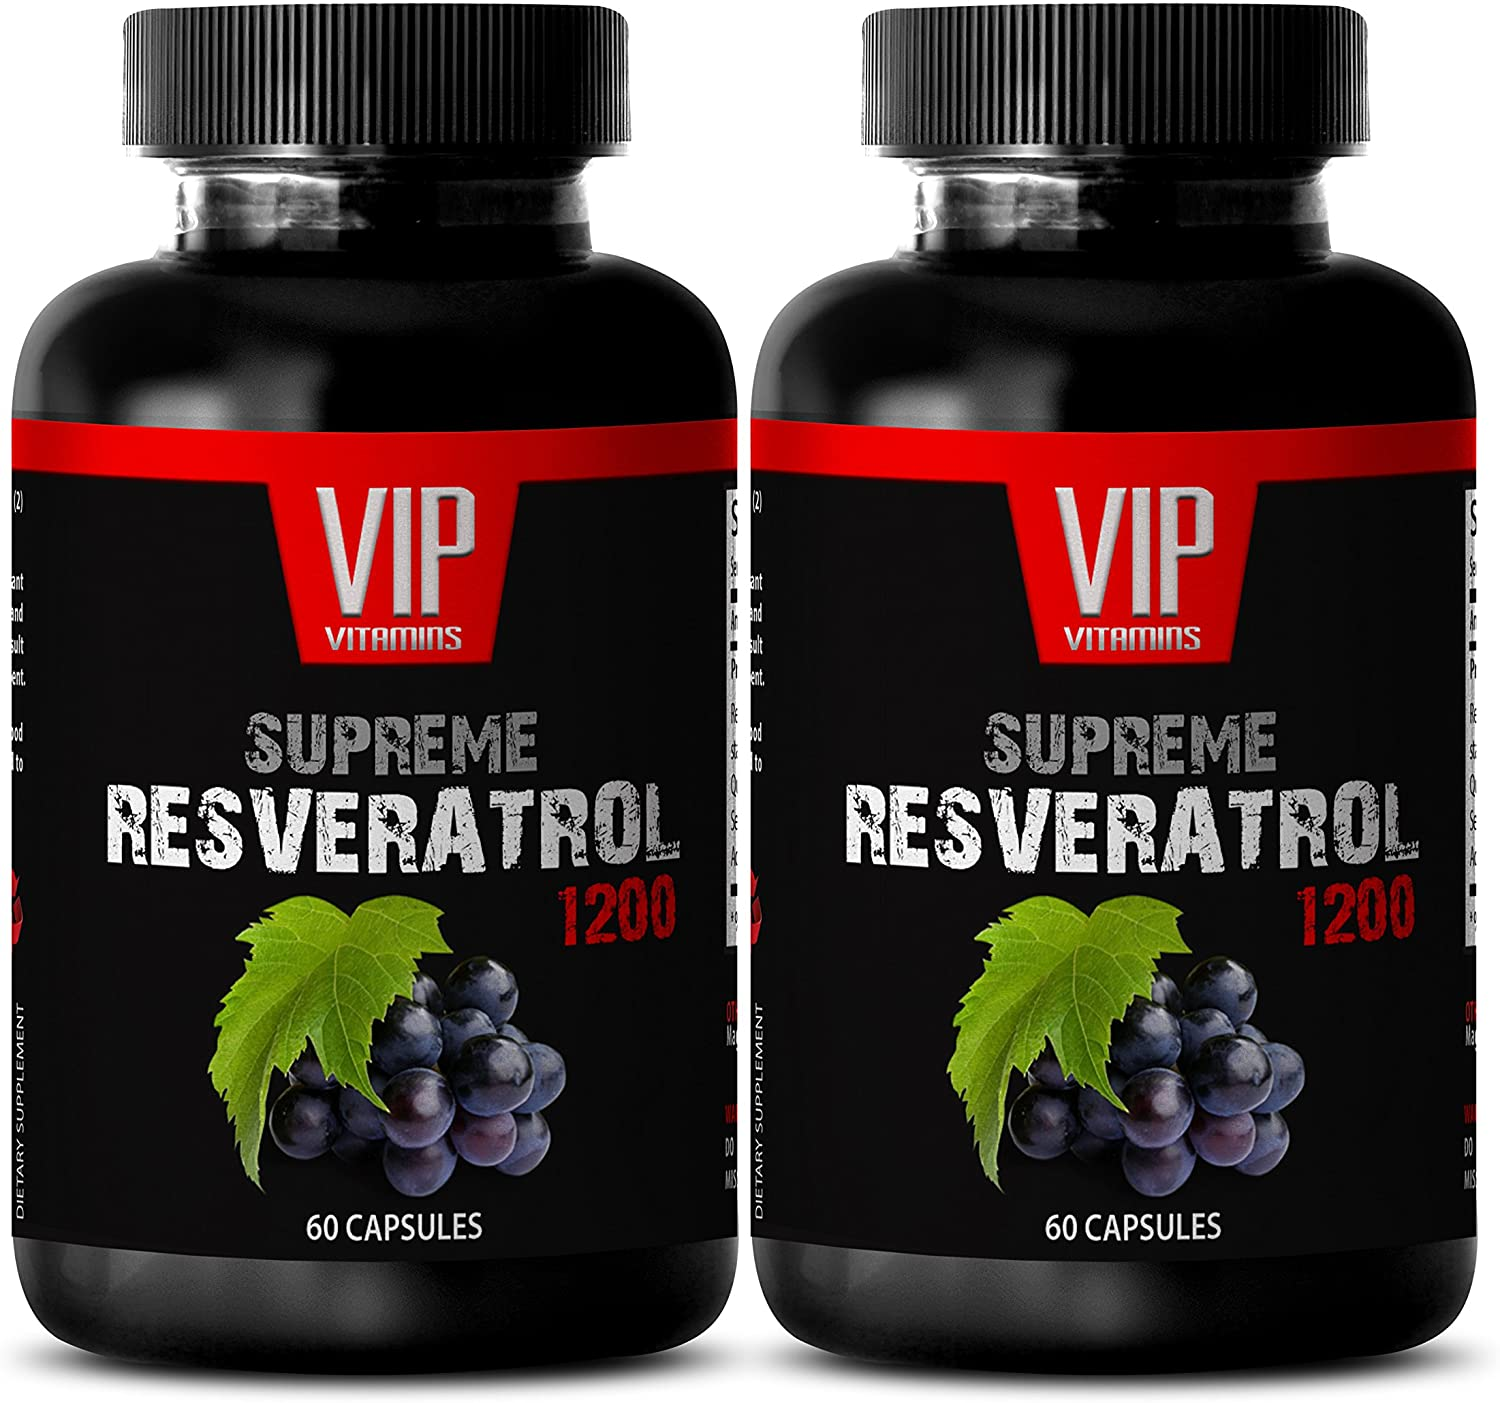 Antioxidant and Weight Loss Supplement - Supreme RESVERATROL 1200Mg - Resveratrol Plus Supplement - 2 Bottles 120 Capsules